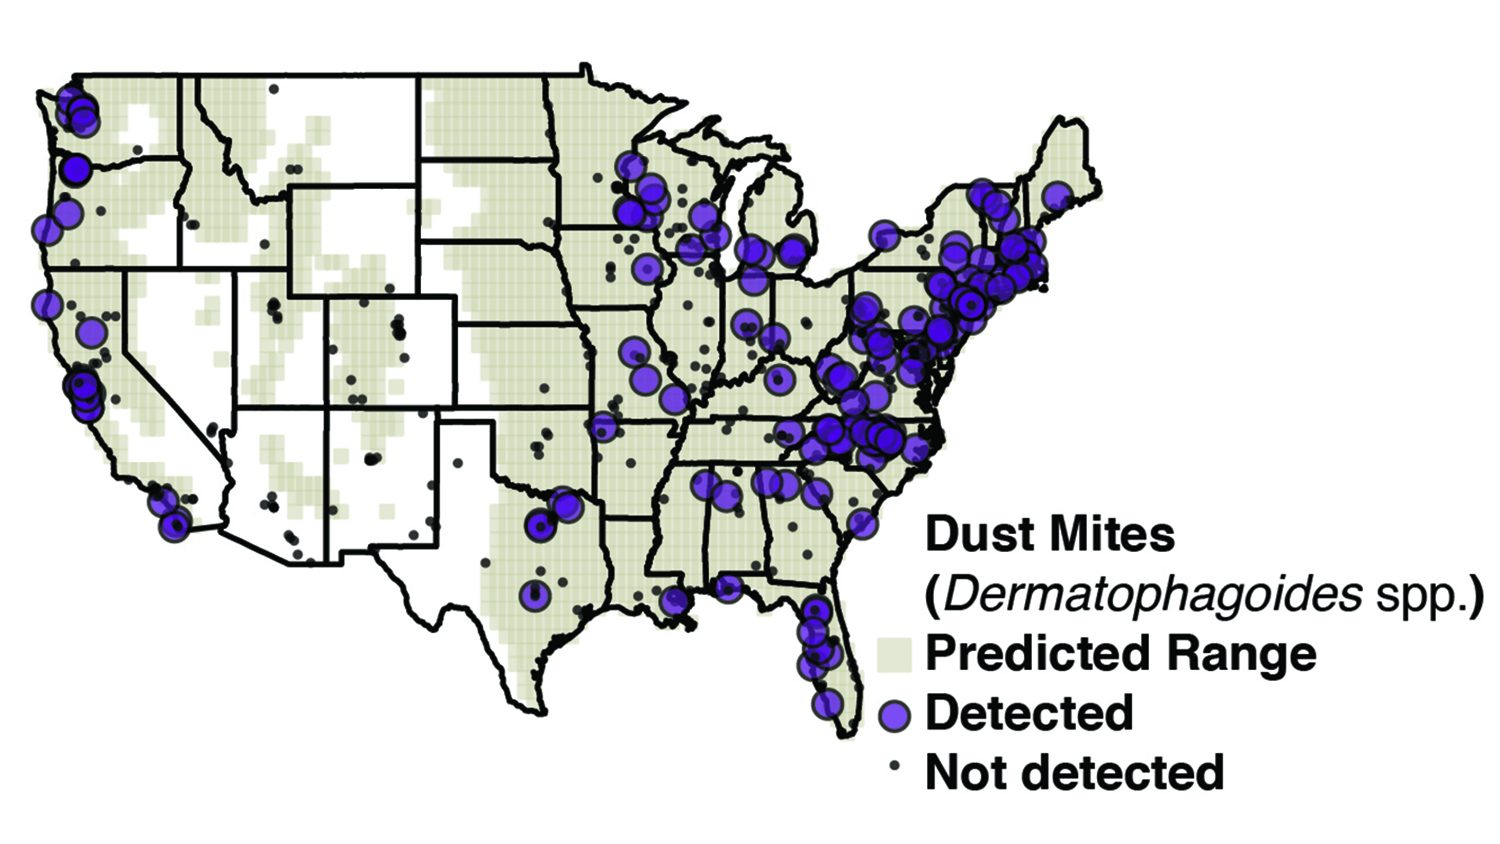 Map of US with dust mite concentrations